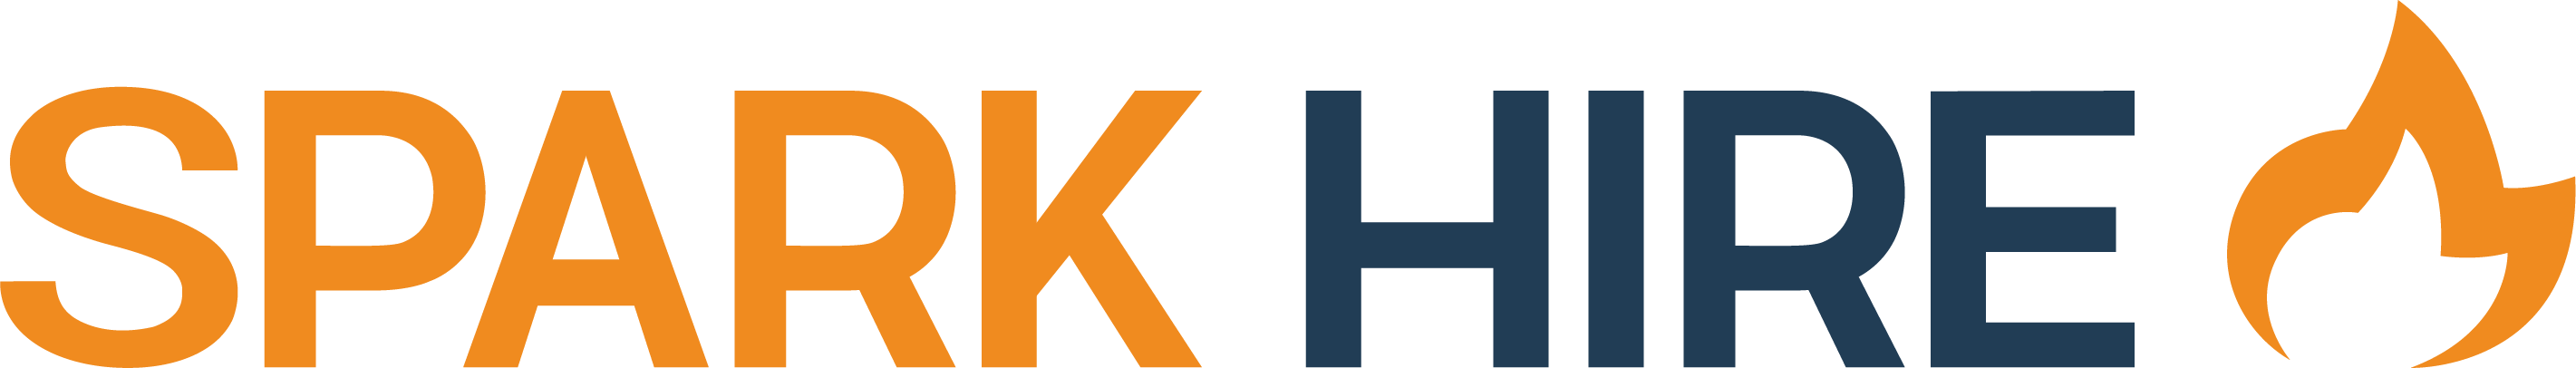 Spark Hire Logo - Orange and Blue.png